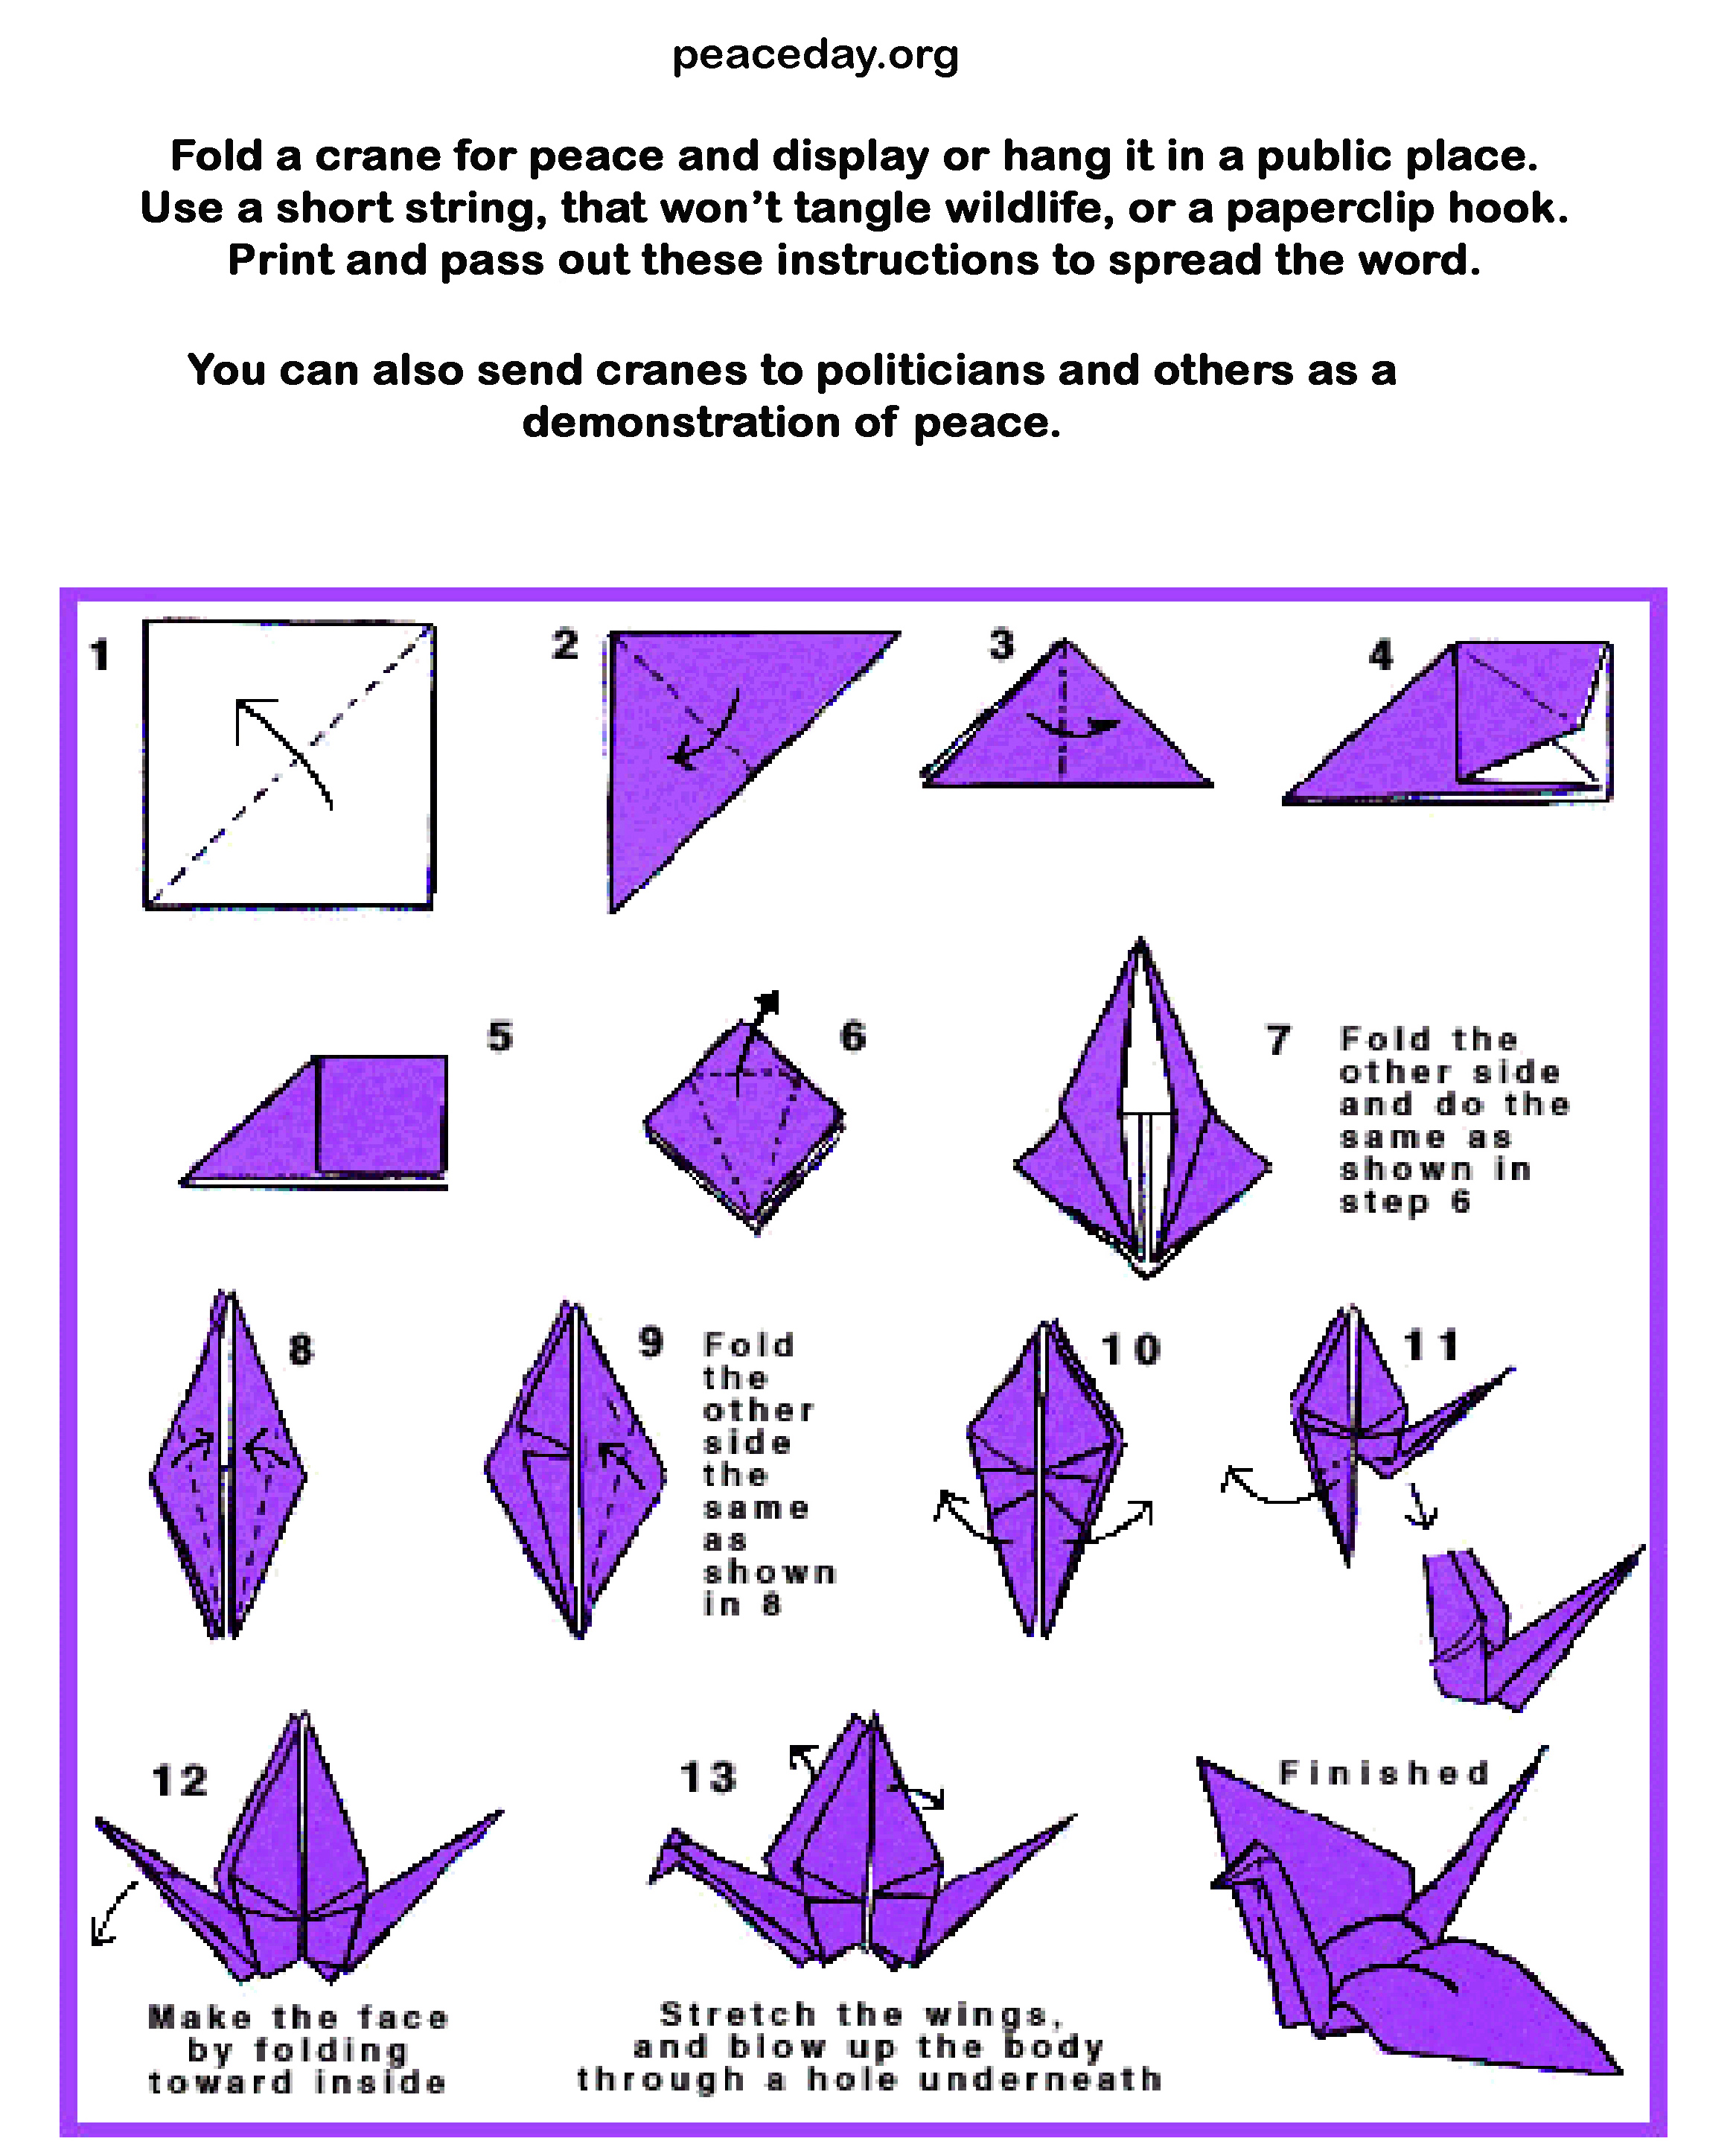 graphic about Origami Crane Instructions Printable known as International Rest Working day